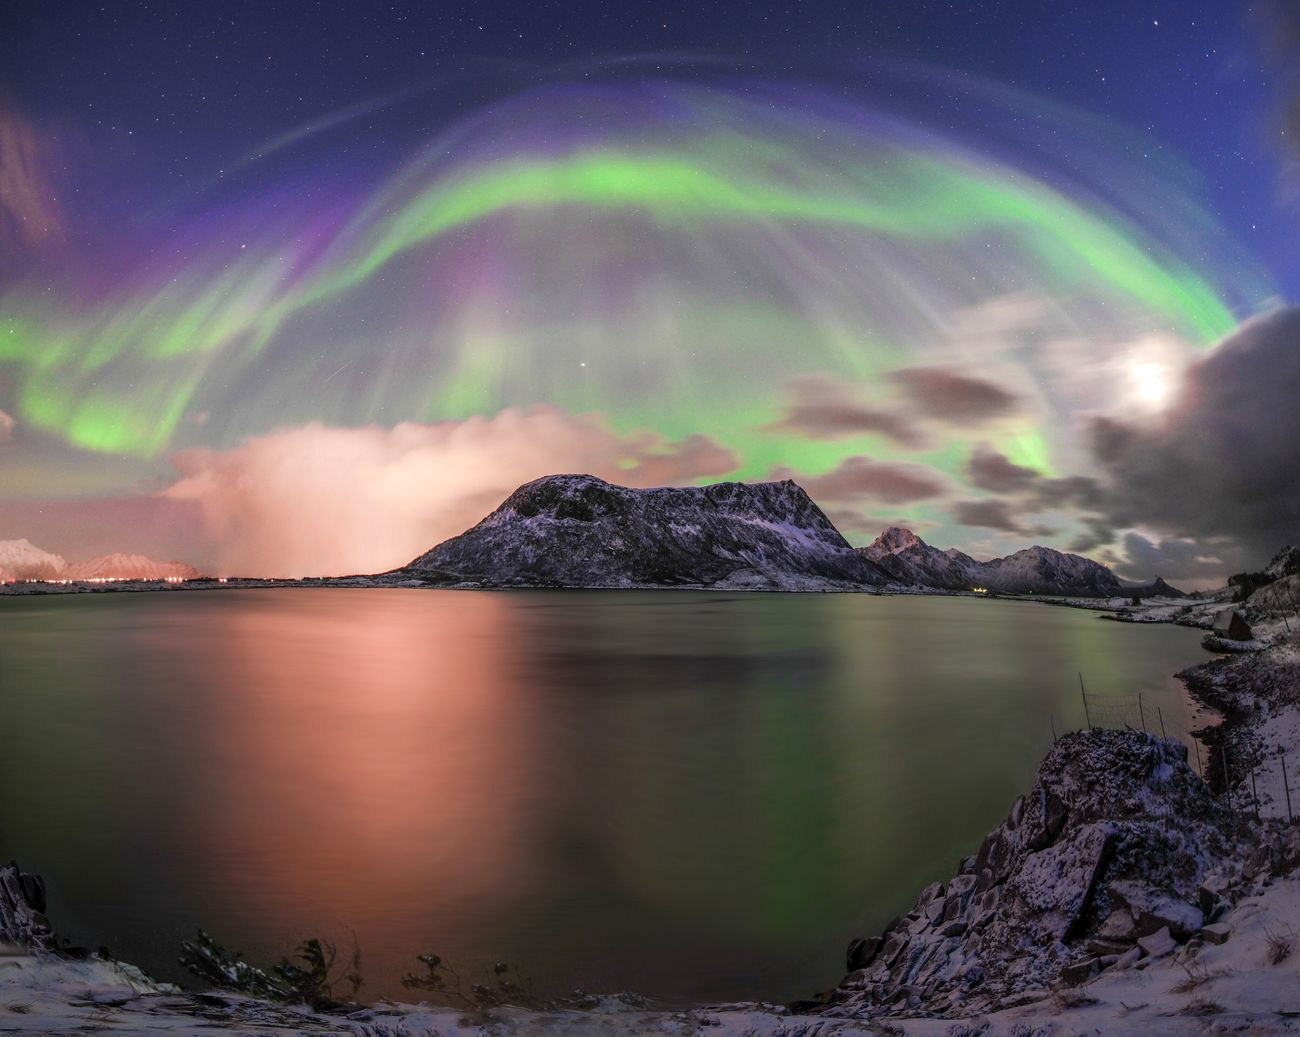 Original Experiences Travel Aurora Aurora Borealis Night Lights Dancing Nightphotography Landscape Mountains Norway Lofoten Adventure Once In A Lifetime The Journey Is The Destination